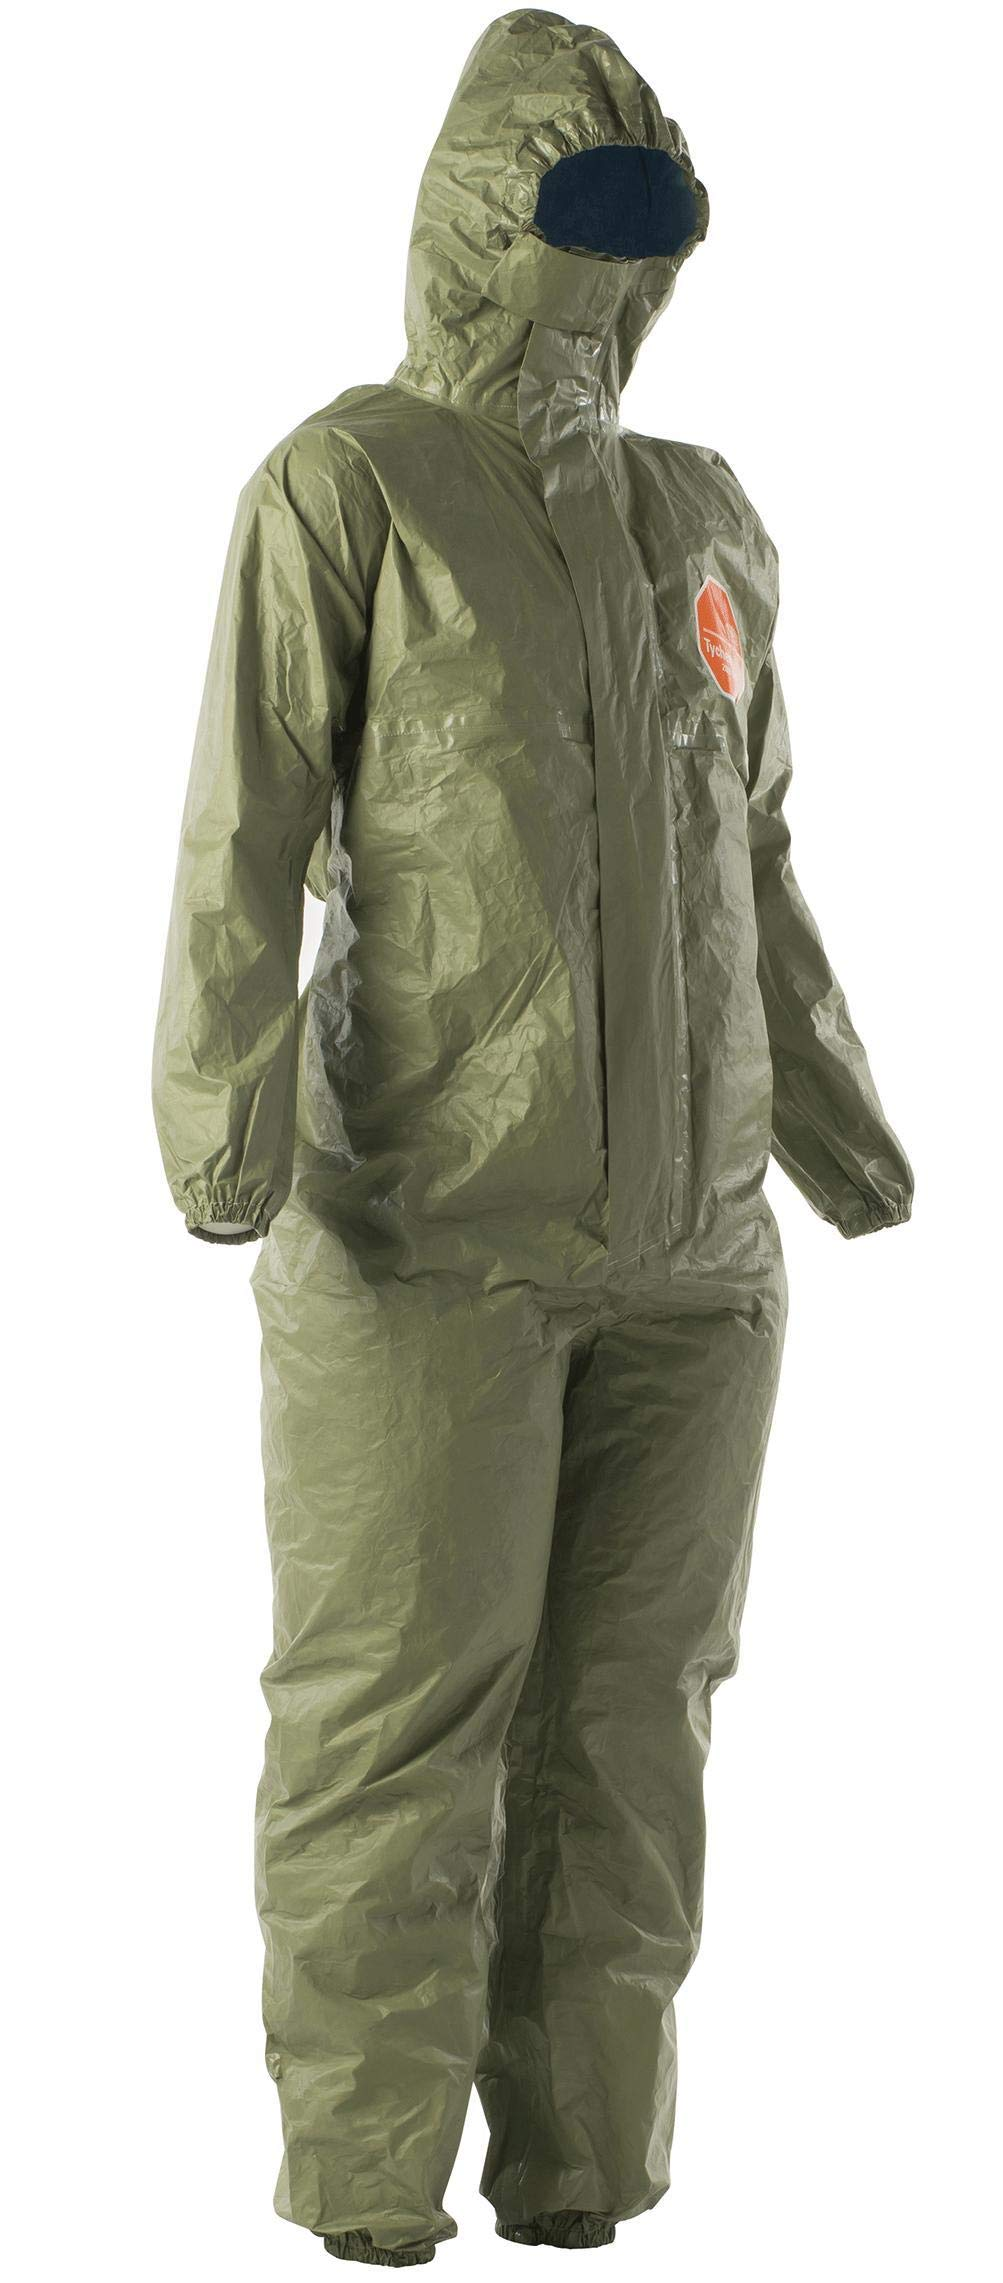 DuPont Tychem 2000 SFR Coverall with Attached Hood, Front Zipper Closure, Taped Seams and Storm Flap, Green, 2X-Large (Pack of 4) by DuPont (Image #1)